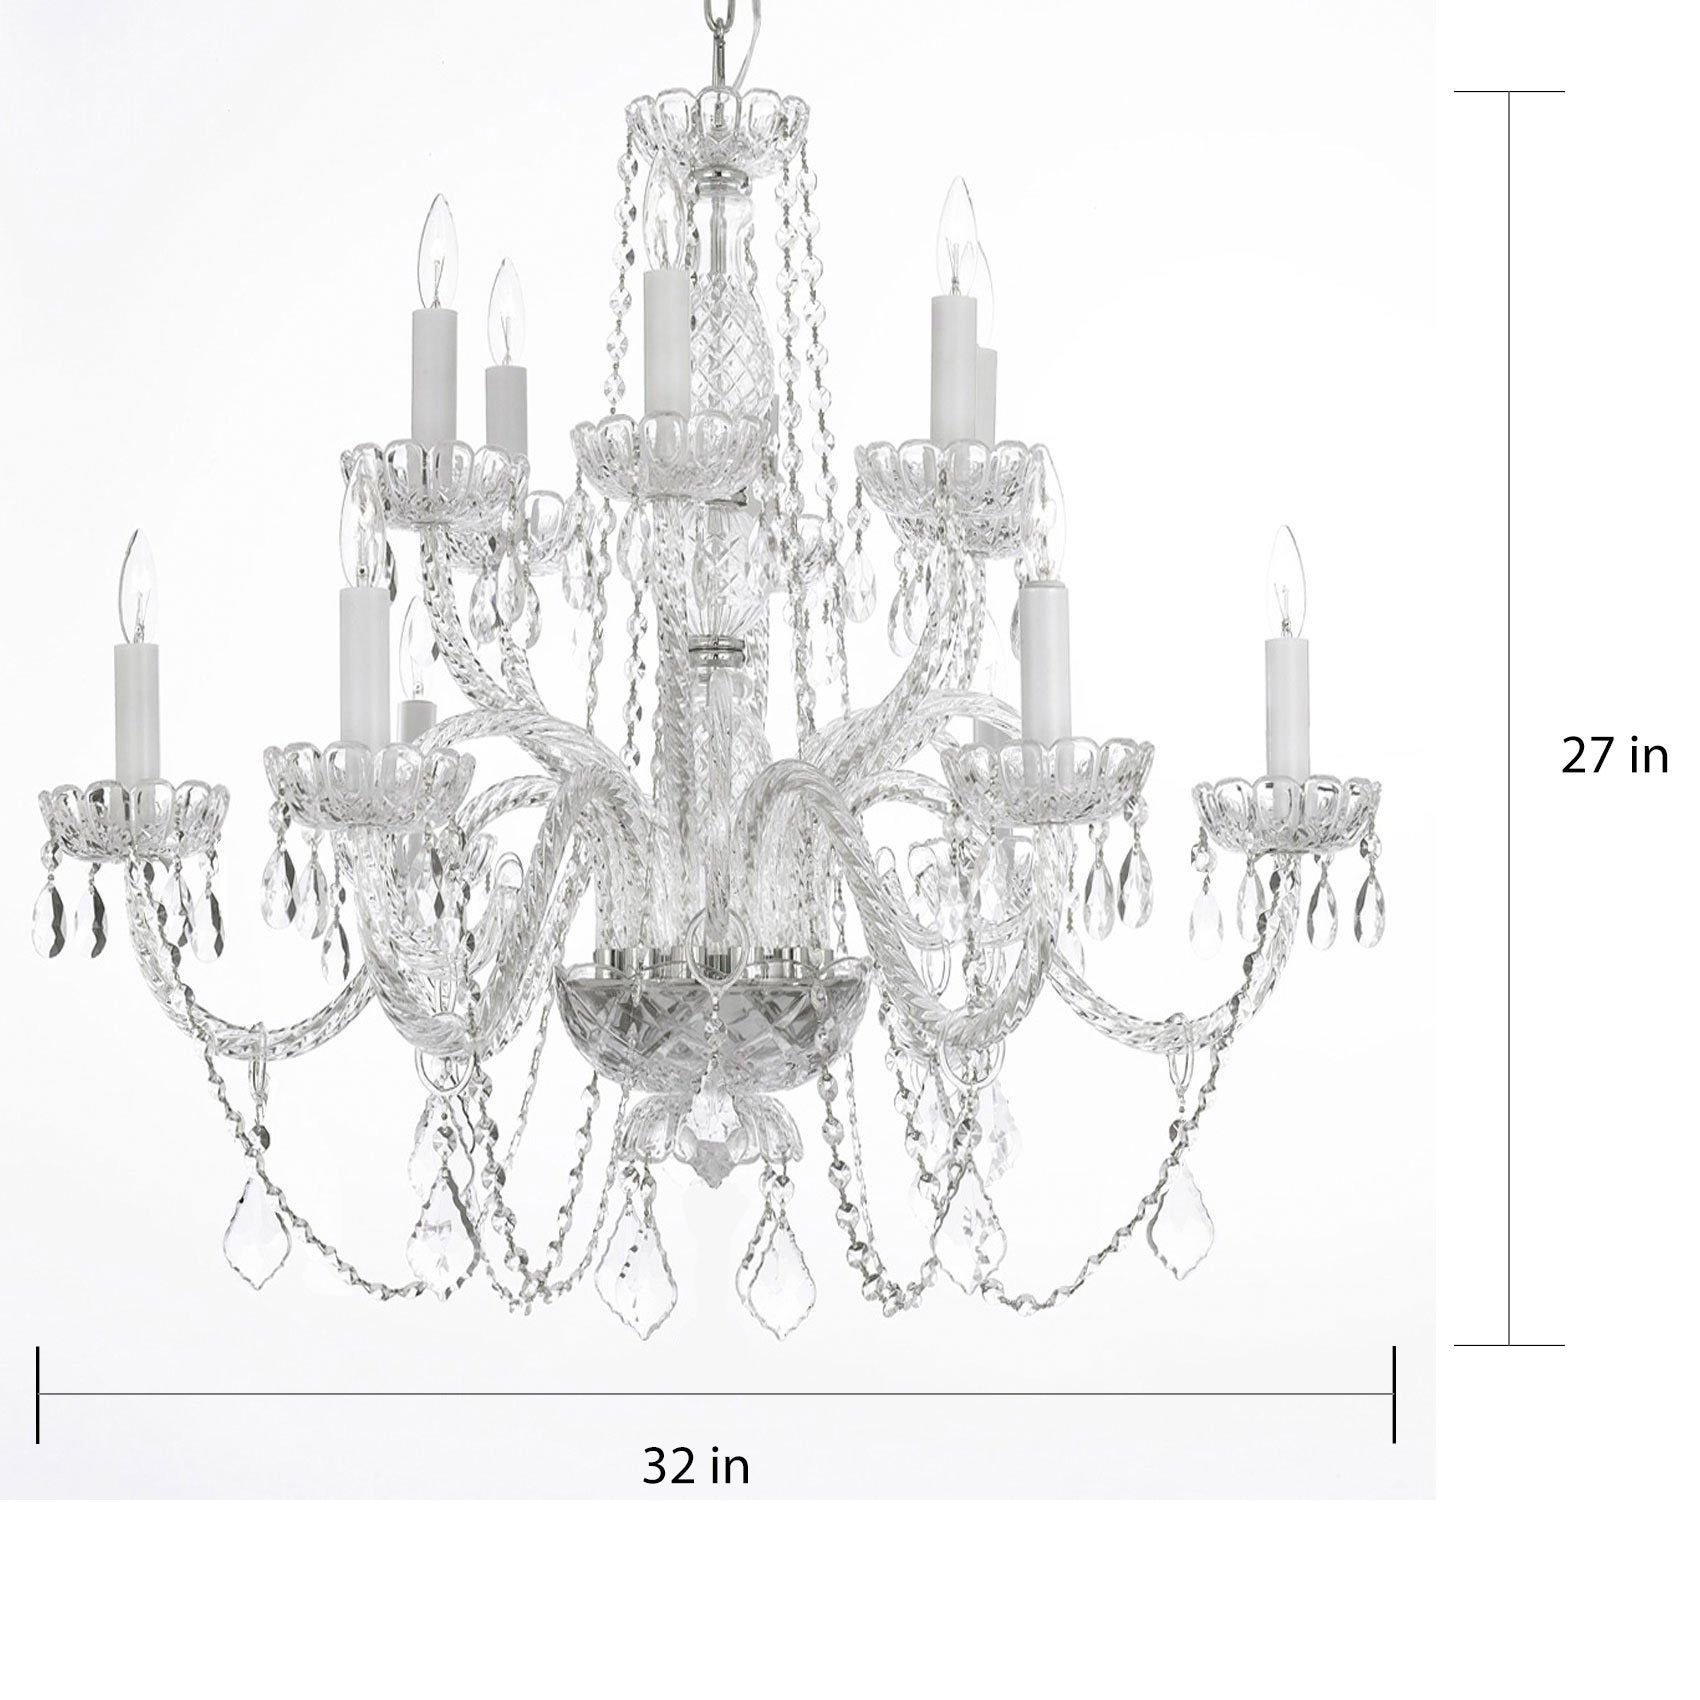 Shop gallery venetian style all crystal 12 light chandelier free shop gallery venetian style all crystal 12 light chandelier free shipping today overstock 6376439 aloadofball Image collections